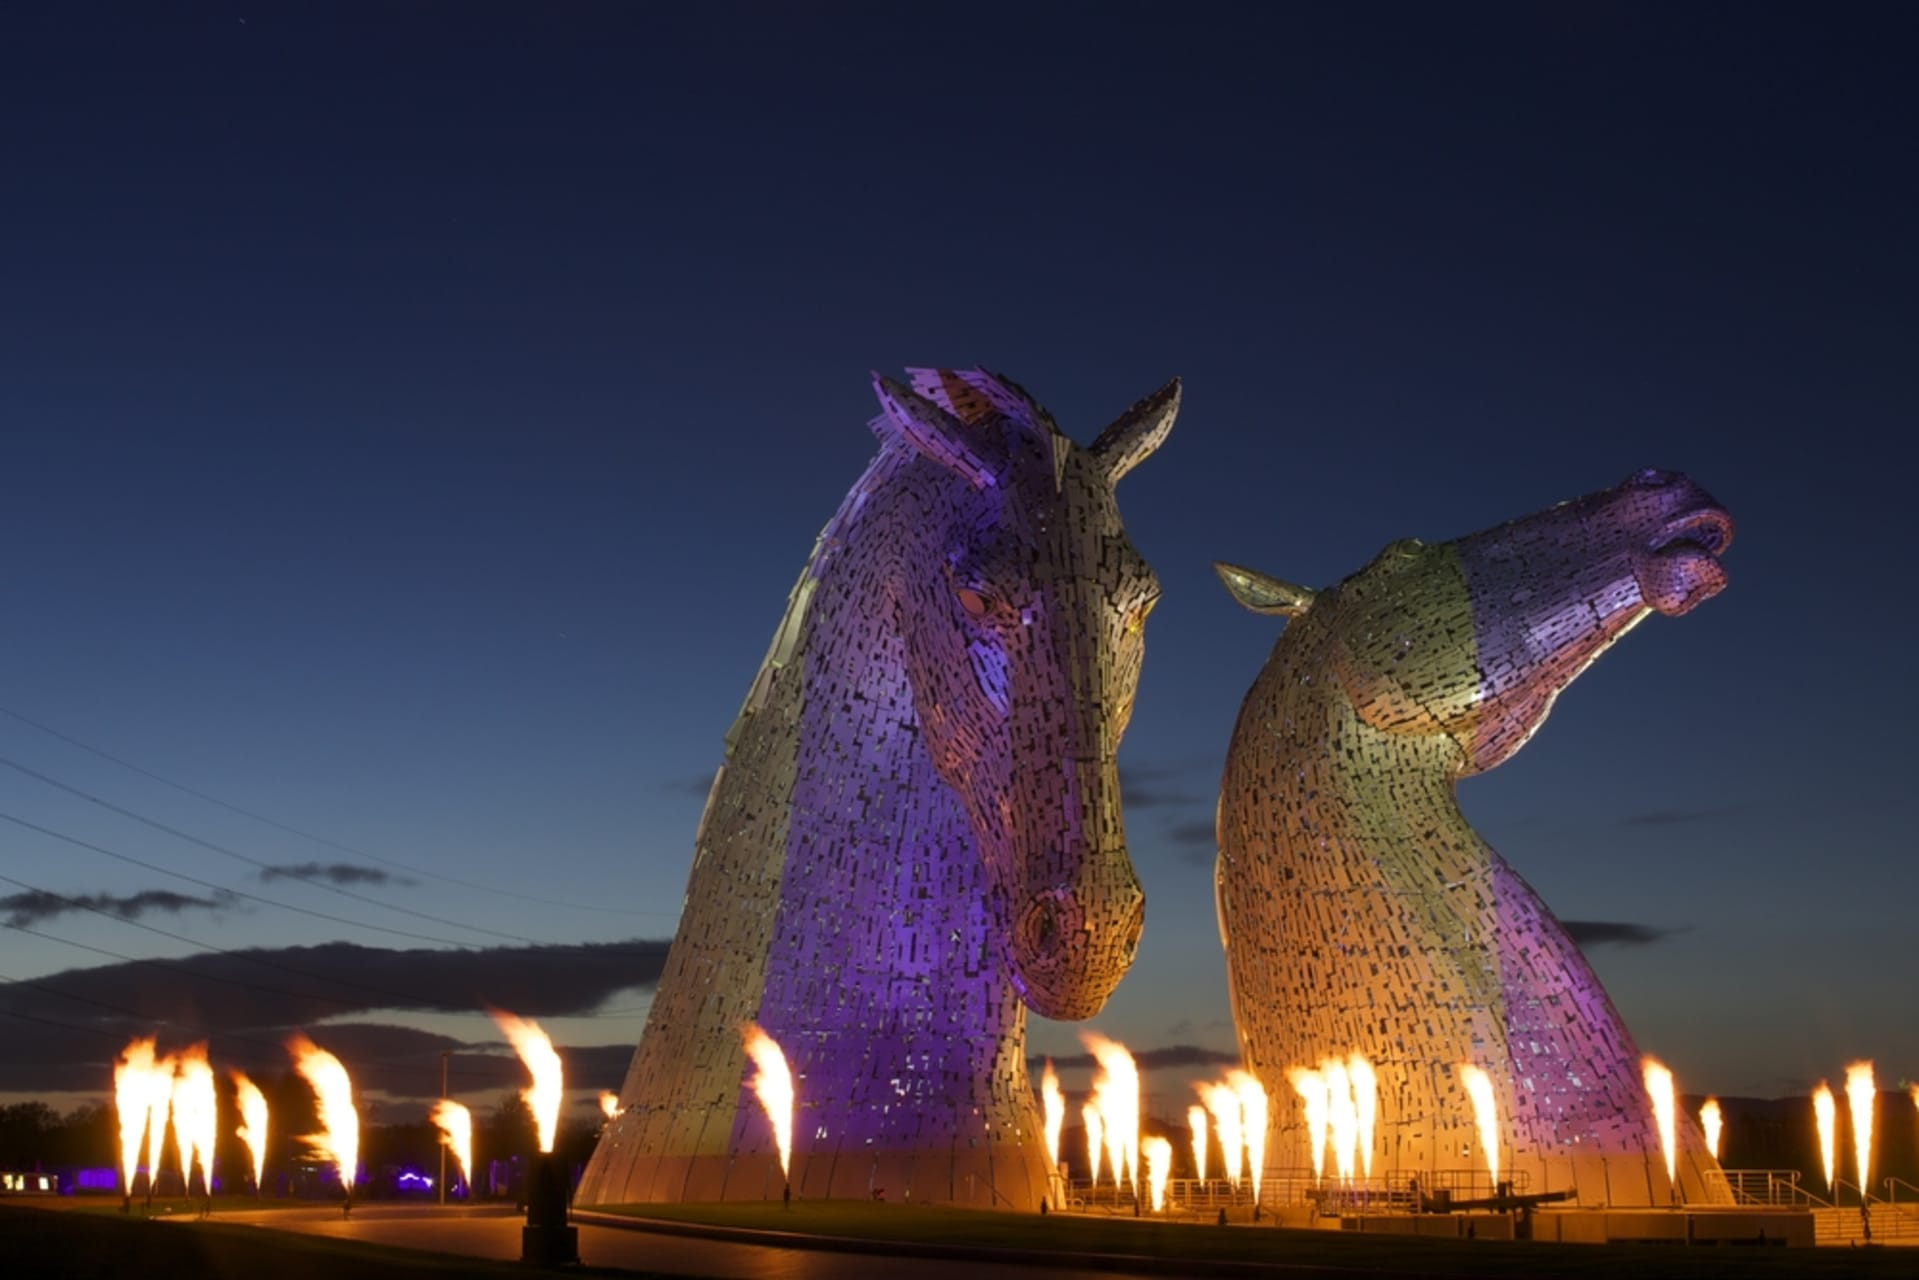 Central Scotland - Meet the Kelpies at night - the world's largest equine sculptures